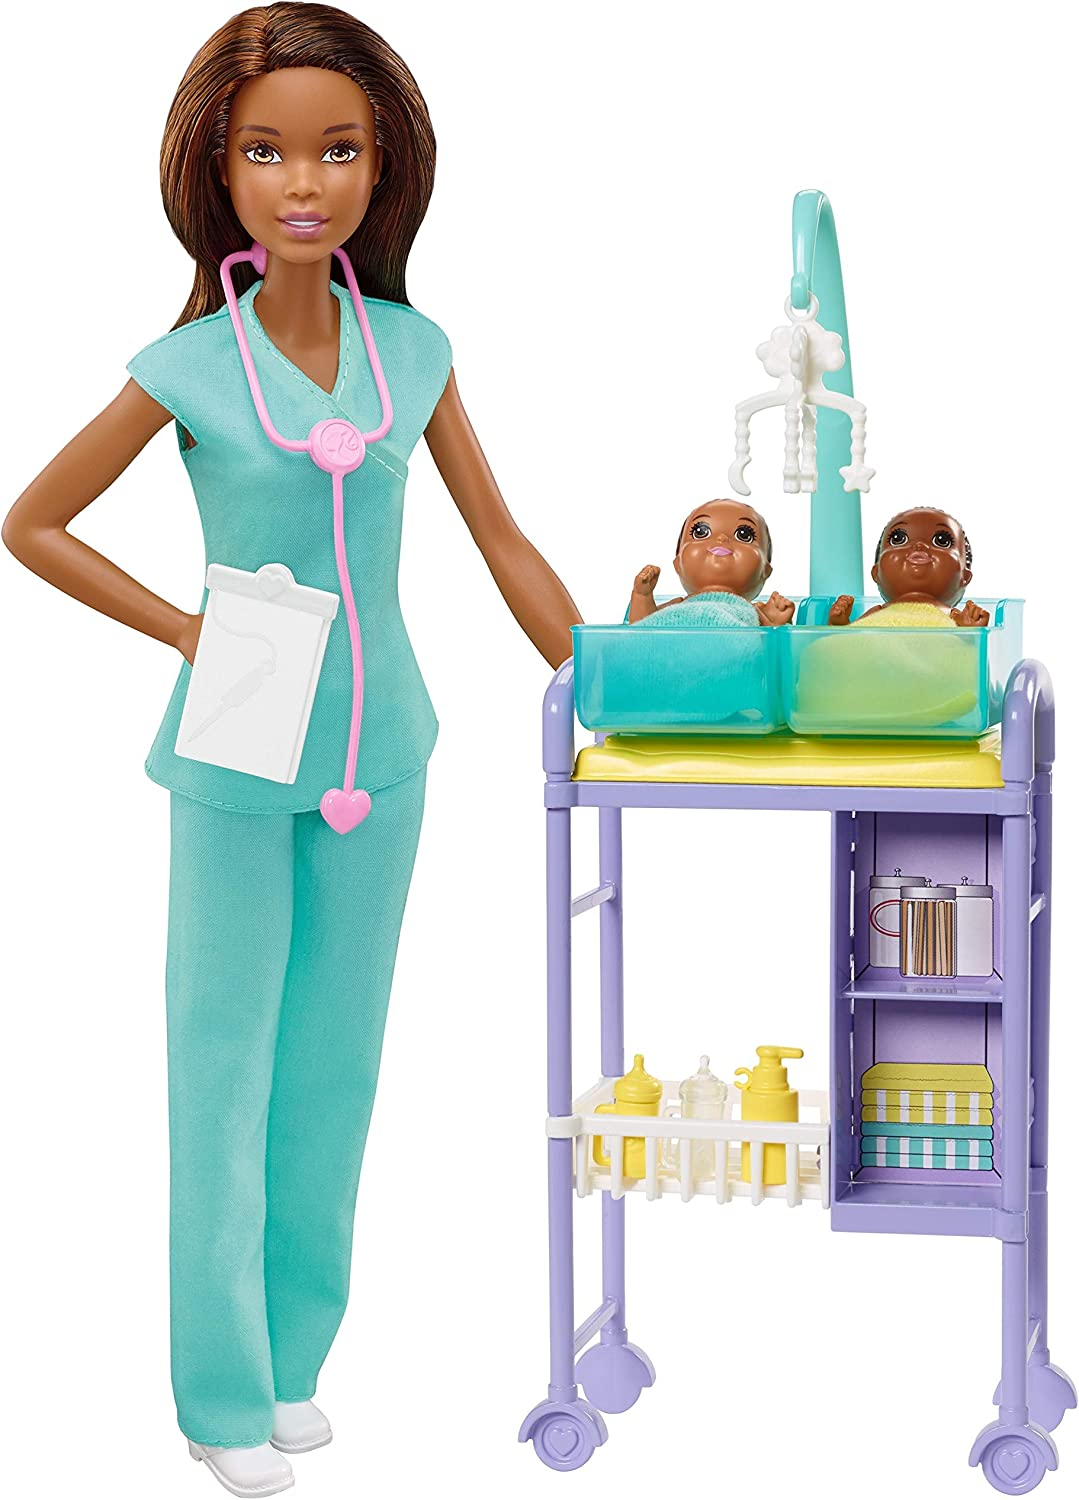 ​Barbie Baby Doctor Playset with Brunette Doll, 2 Infant Dolls, Exam Table and Accessories